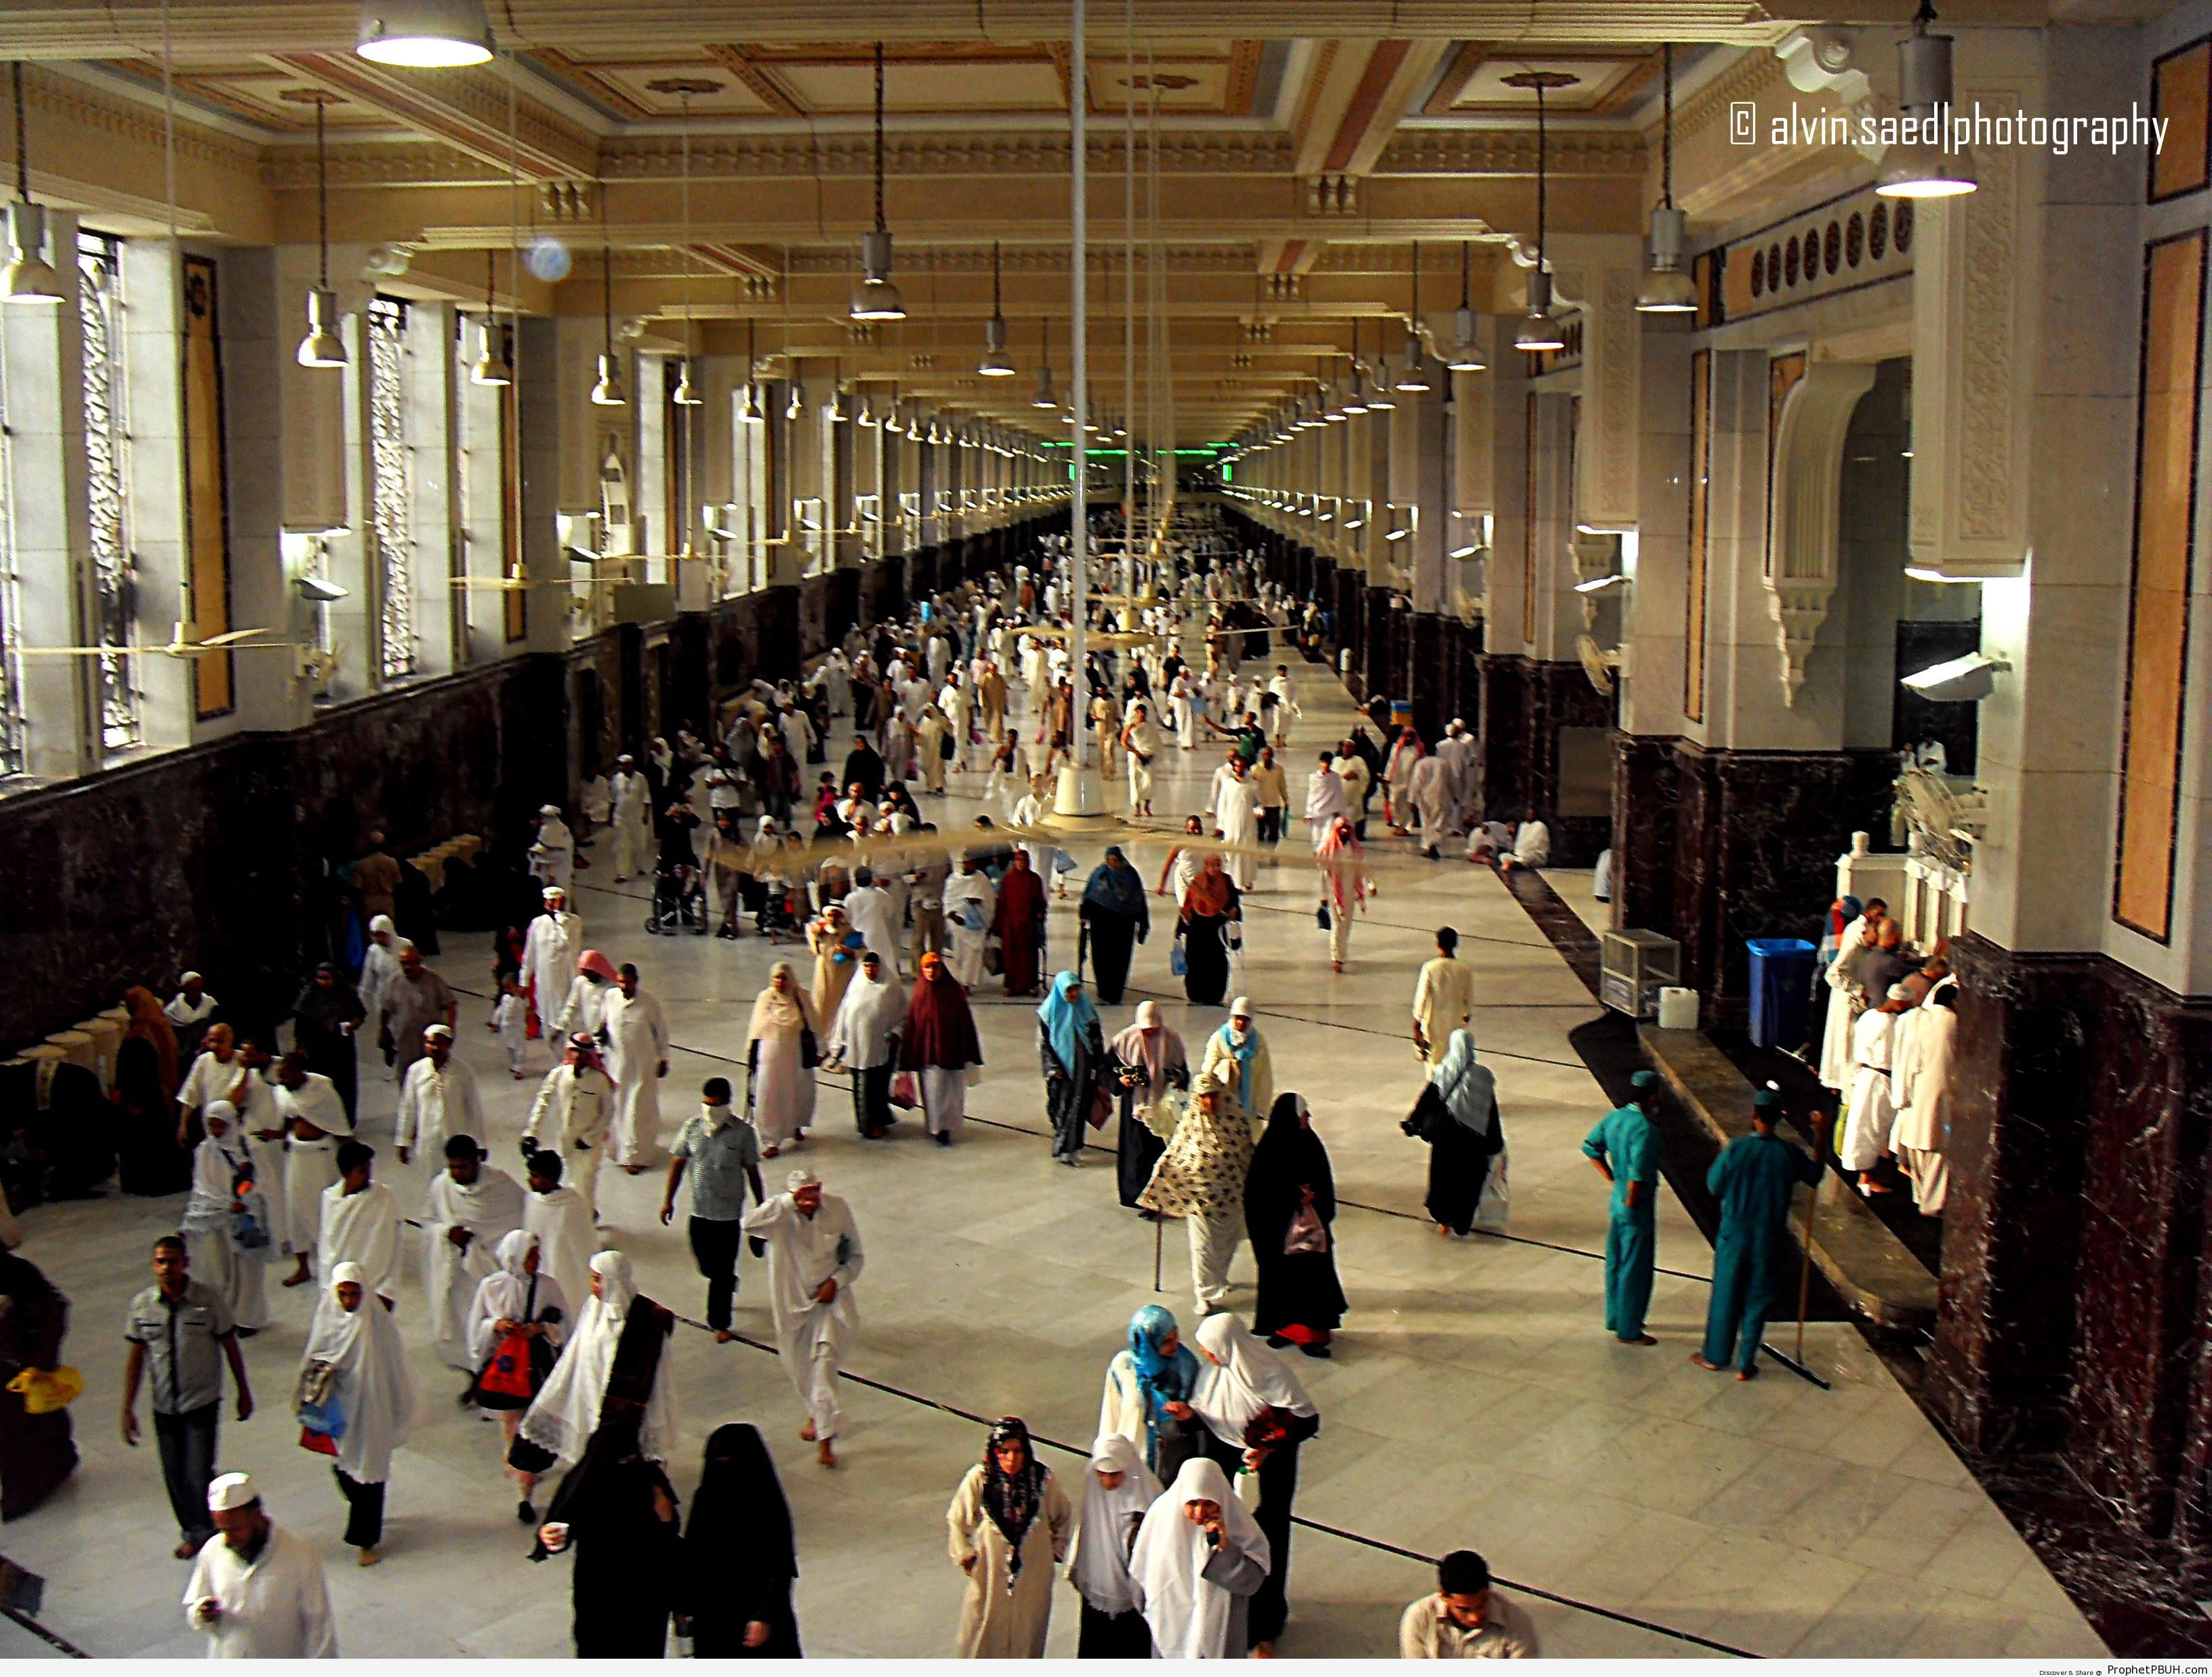 People at the Safa and Marwa Walk (Makkah, Saudi Arabia) - Islamic Architecture